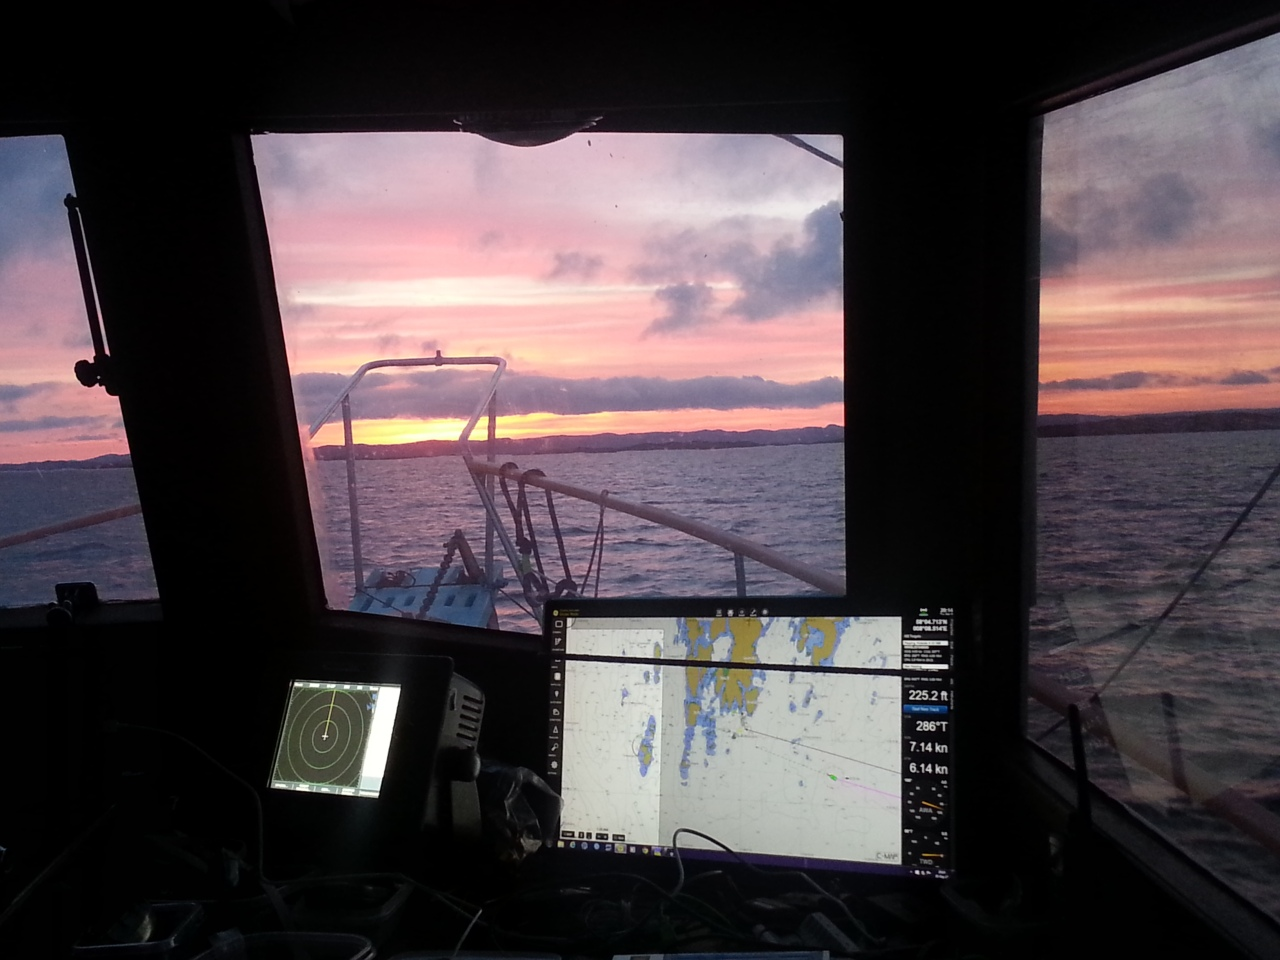 Approaching Norway. With one Monitor showing the Nav Program Coastal Explorer and the Raymarine radar display next to it.